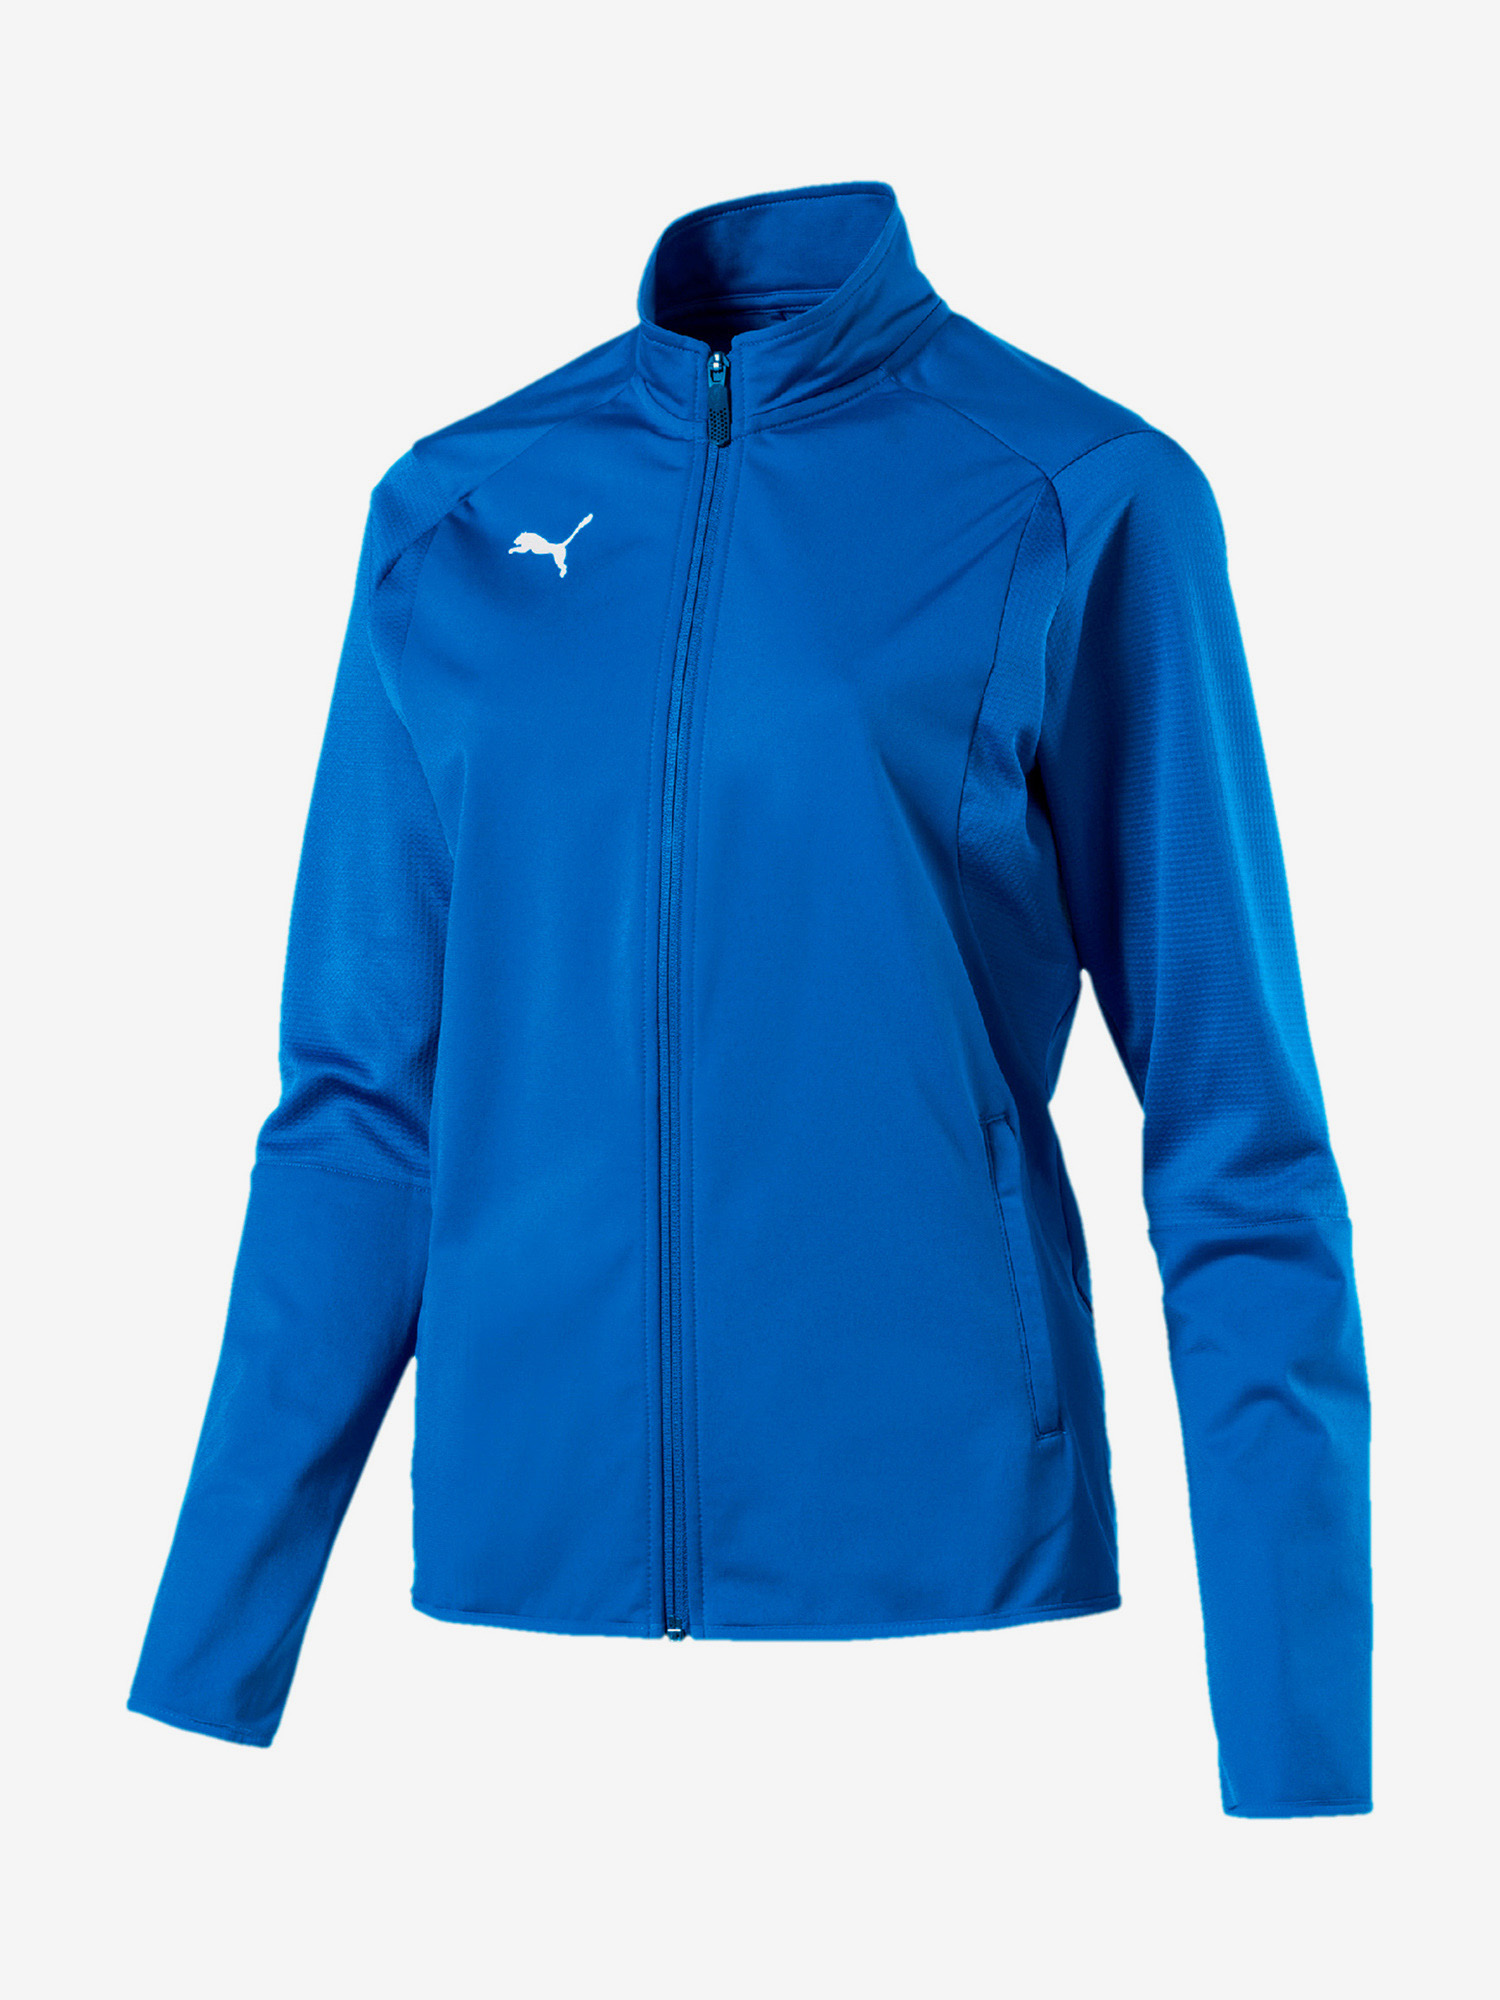 Bunda Puma Liga Training Jacket W Modrá